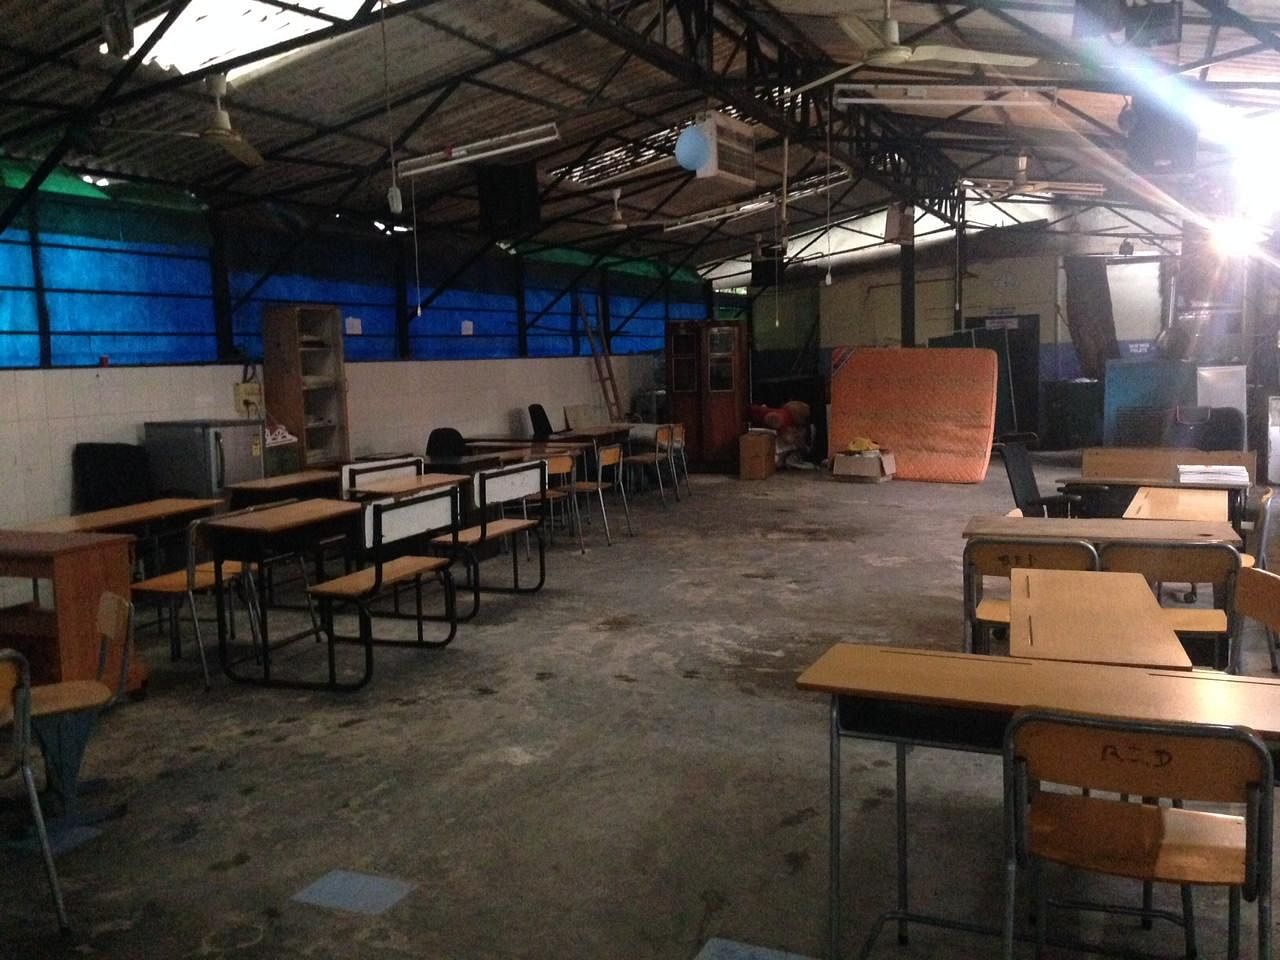 The college area of the school. These scantily equipped classrooms have seen extraordinary grit and competence.